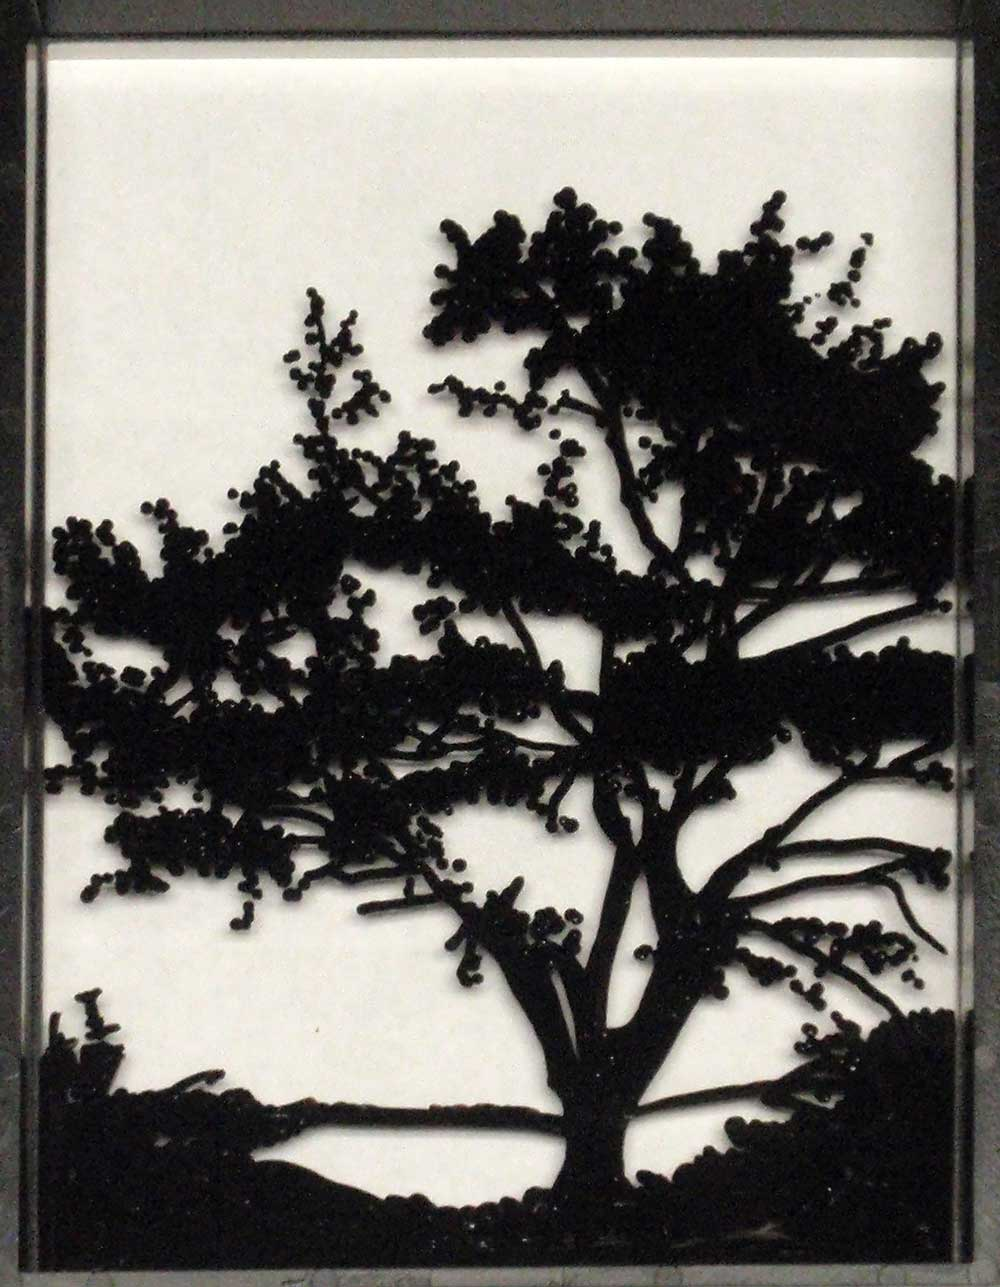 Tree painted on reverse glass